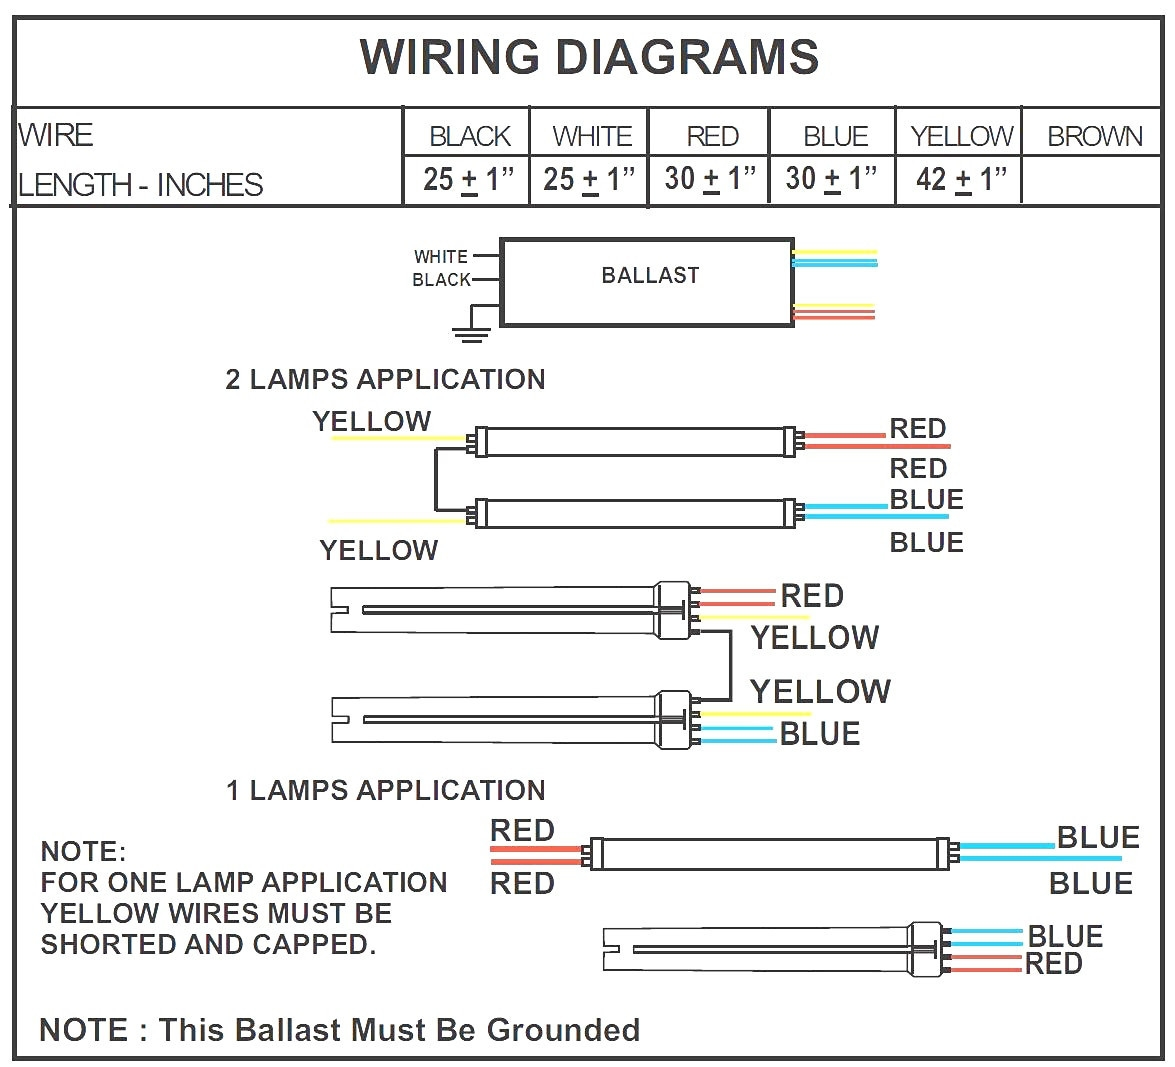 workhorse 5 ballast wiring diagram on workhorse 5 ballast wiring